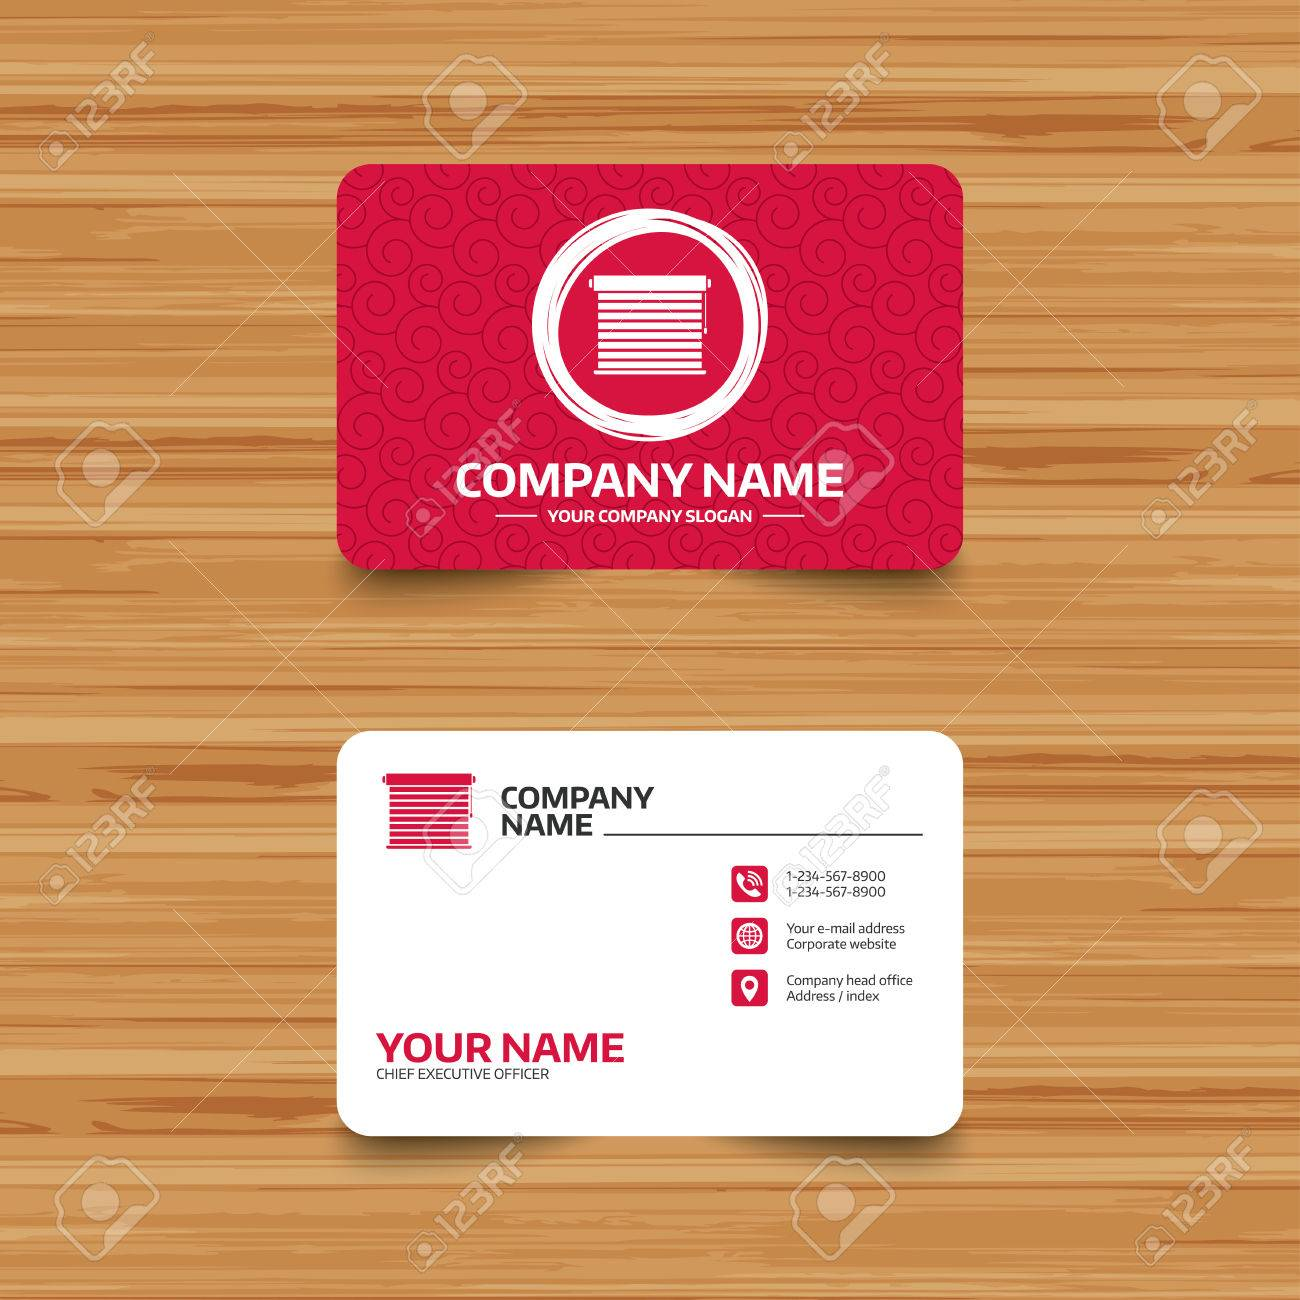 Business card template with texture louvers sign icon window louvers sign icon window blinds or jalousie symbol phone web and location icons visiting card vector reheart Gallery